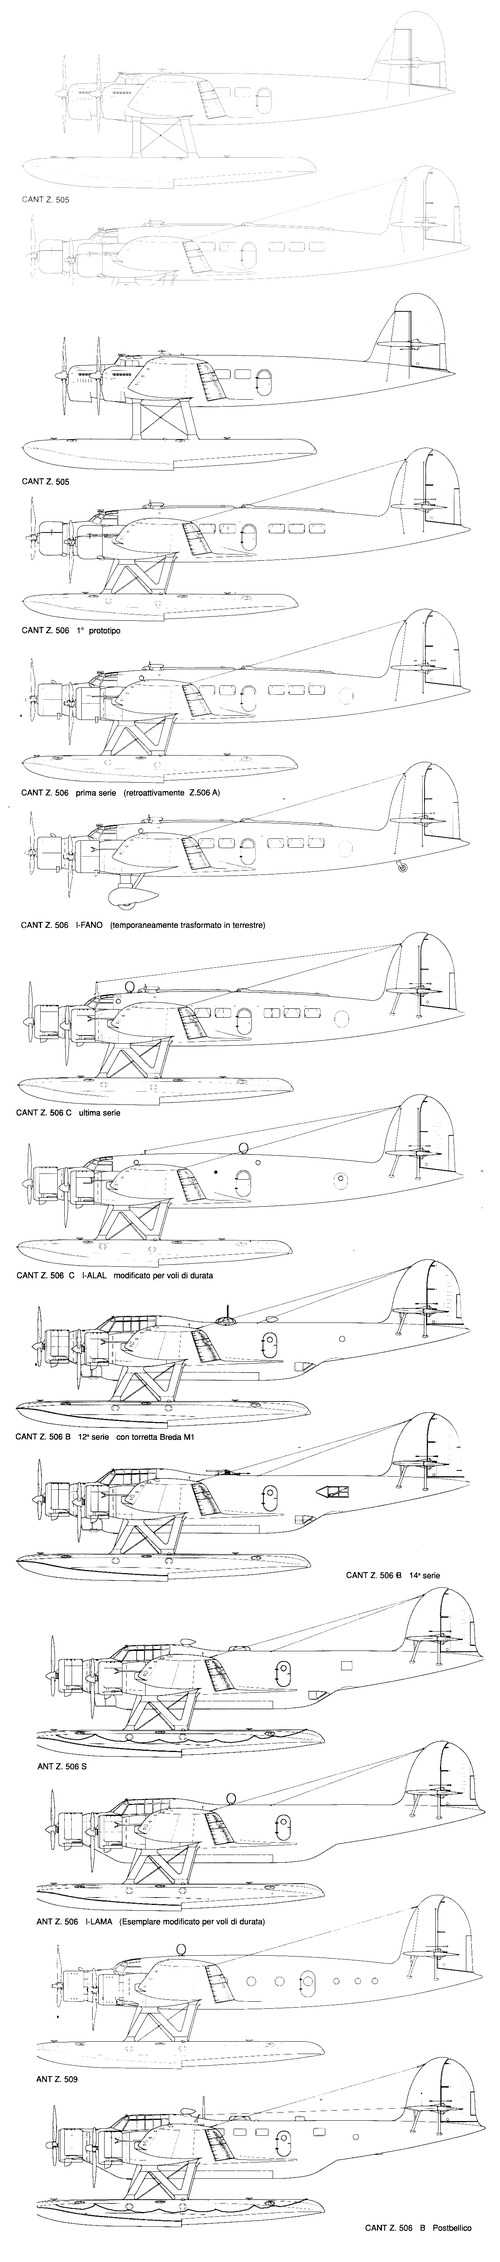 CANT Z.506 Airone